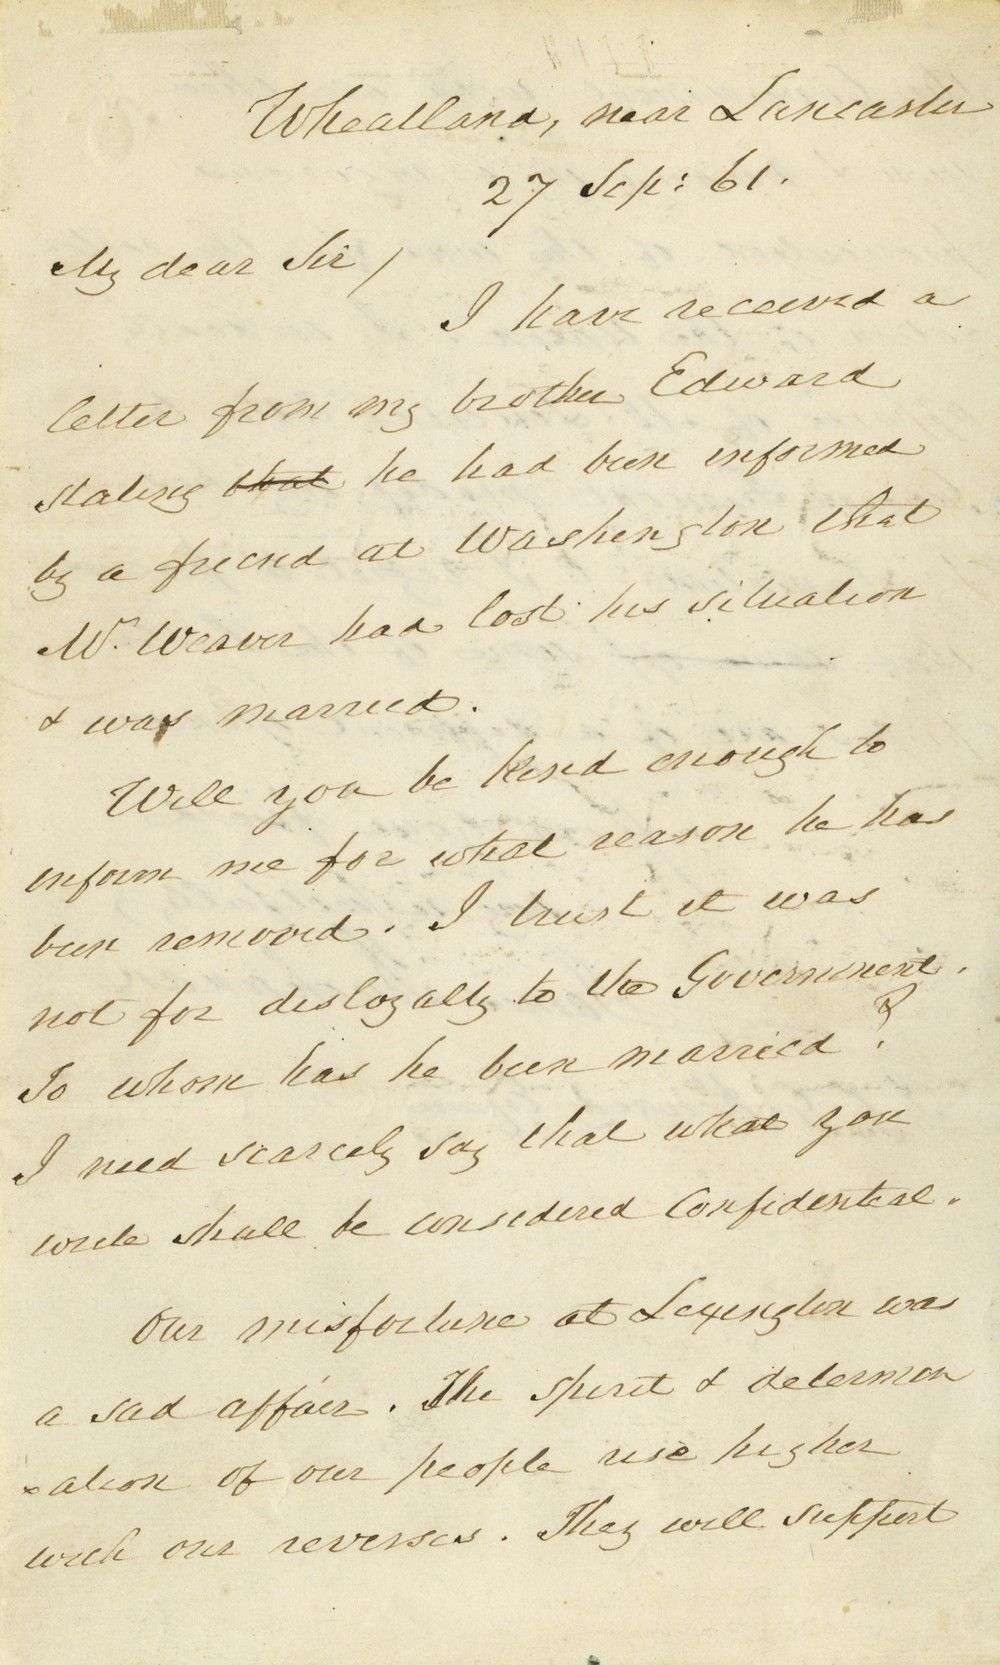 Buchanan Approves Abraham Lincoln's Ordering Fremont to Rescind His Emancipation Proclamation